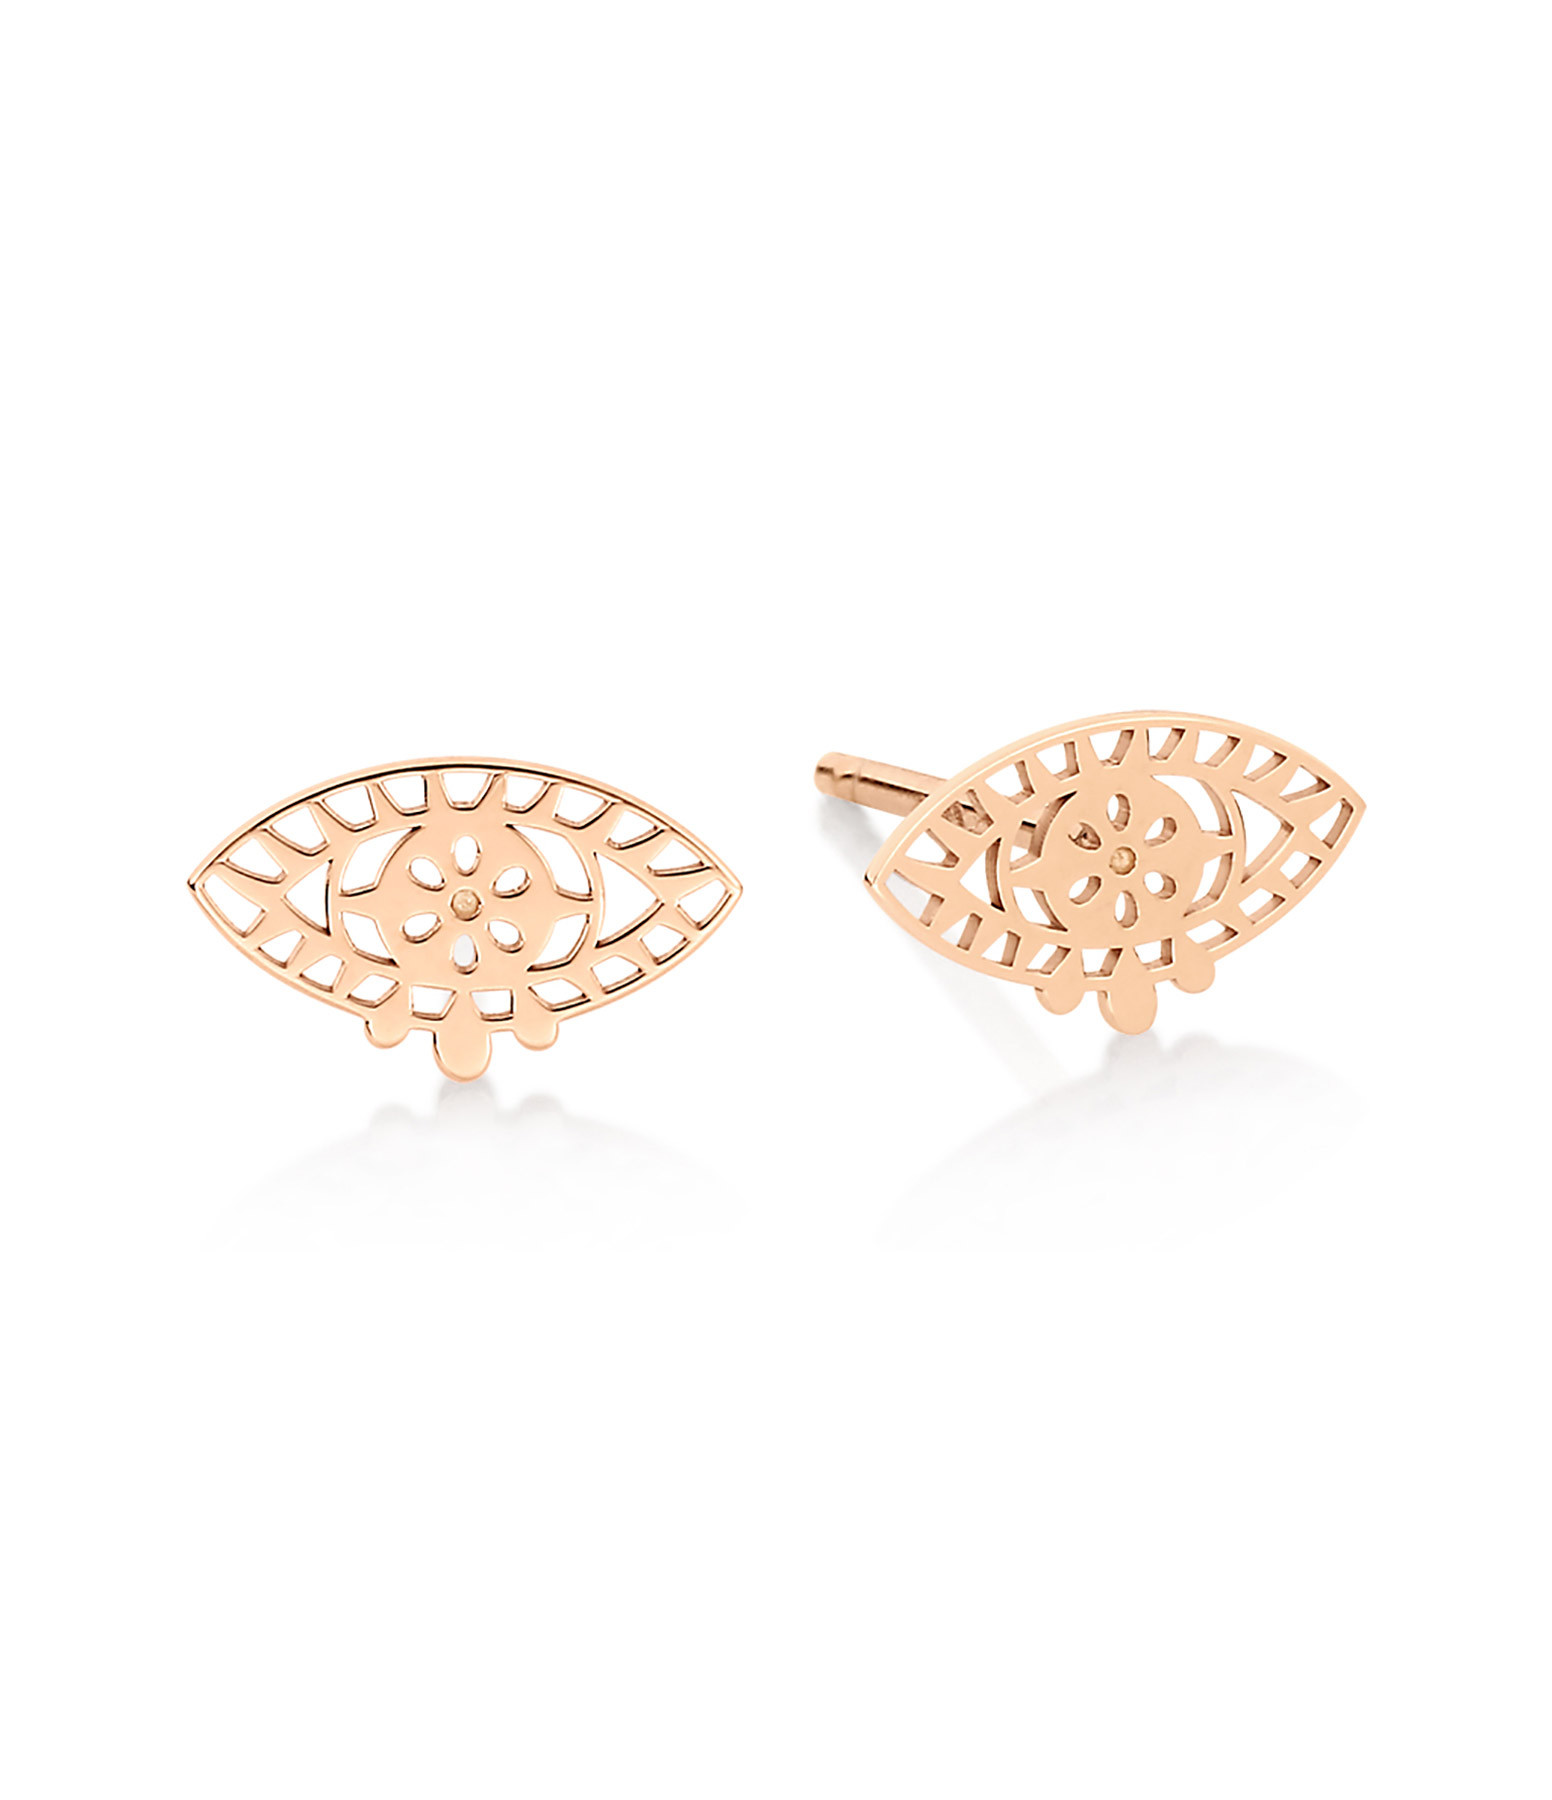 GINETTE NY - Boucles d'oreilles Ajna Puces Or Rose